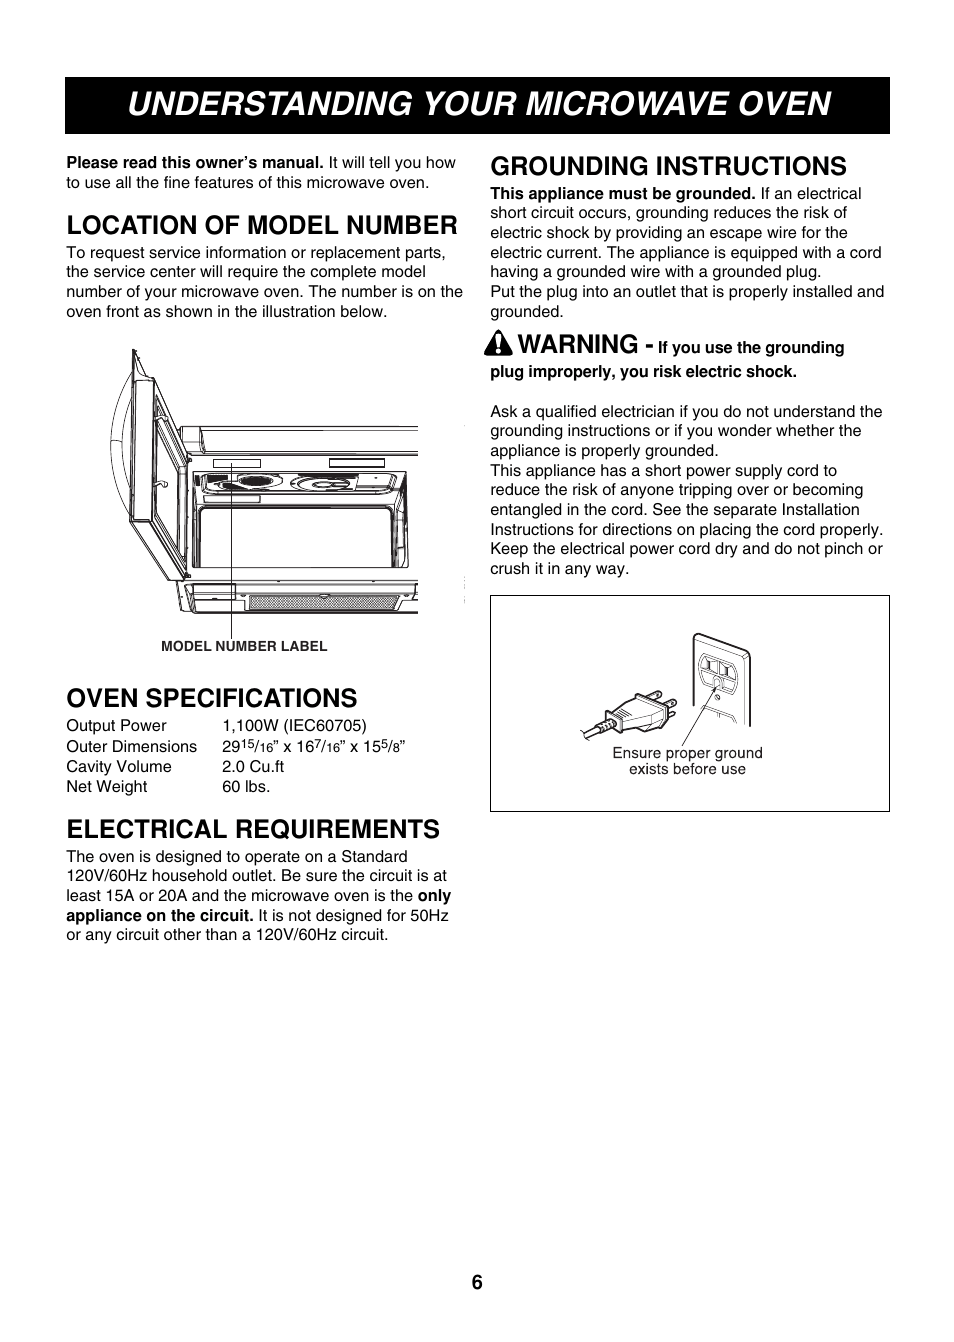 medium resolution of understanding your microwave oven location of model number oven specifications lg lmvm2085st user manual page 6 35